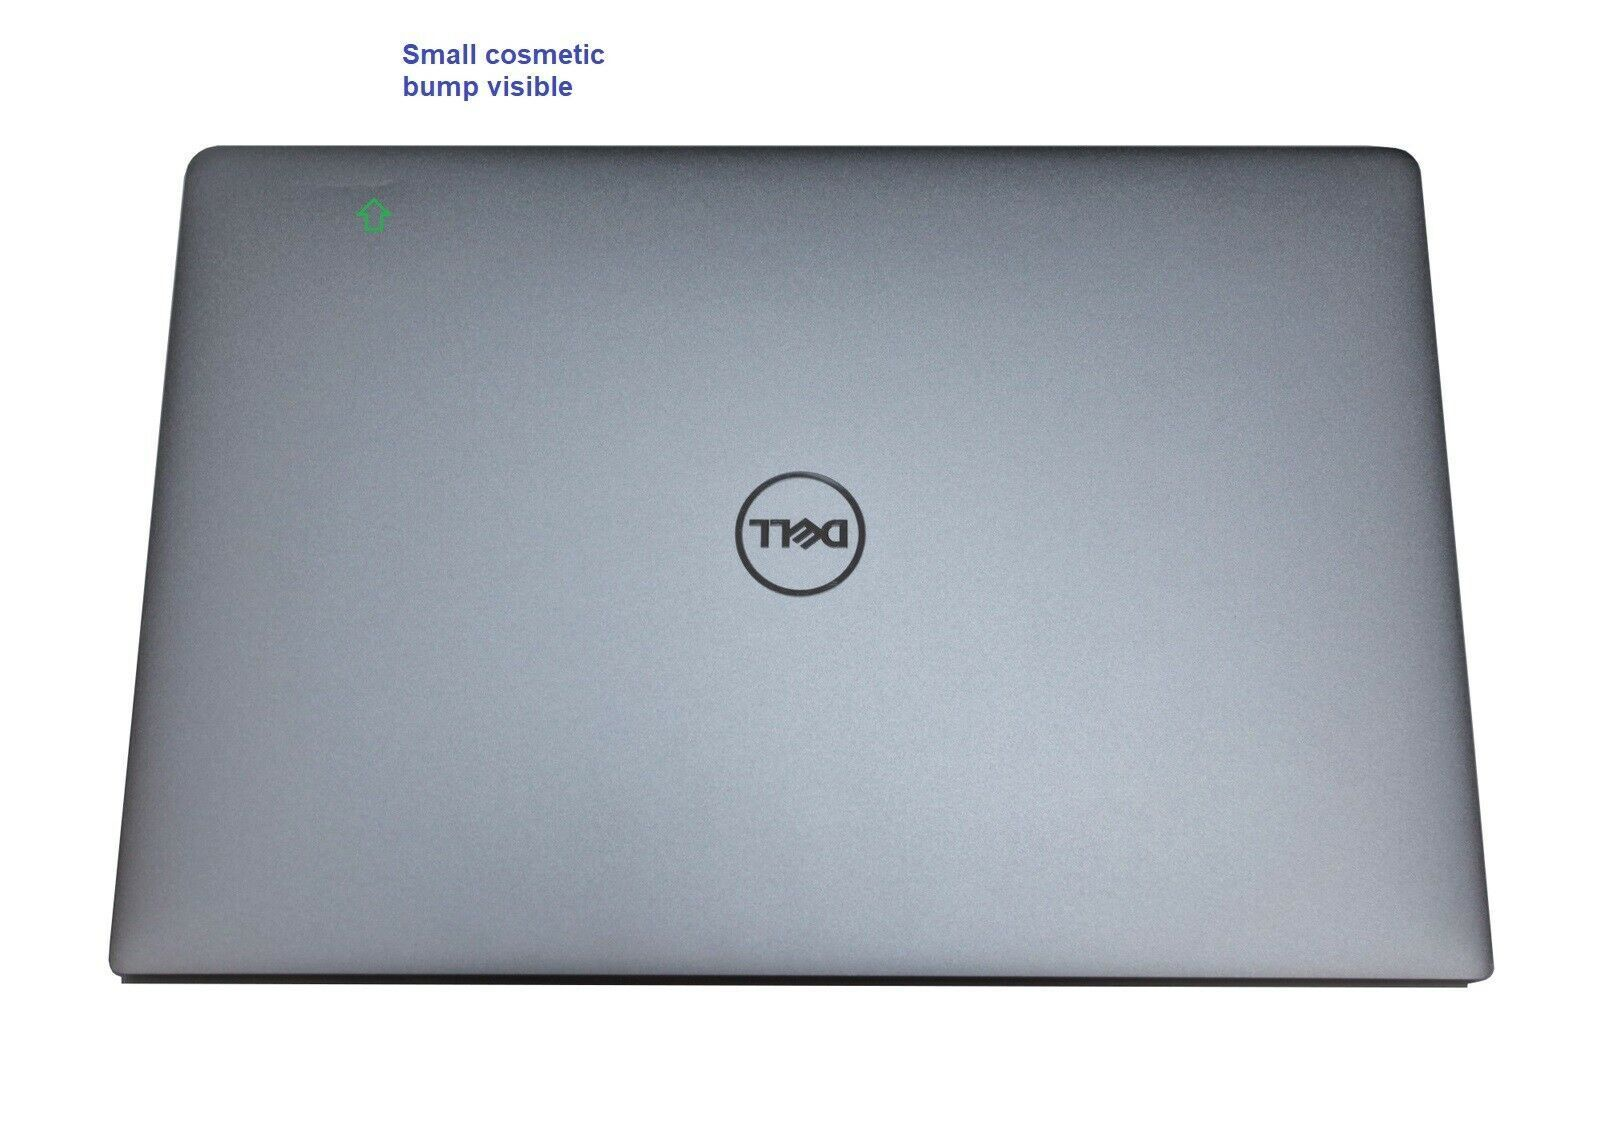 Dell XPS 13 9370 4K UHD UltraBook: Core i7-8550U, 512GB, 16GB RAM, 1.2Kg, VAT - CruiseTech